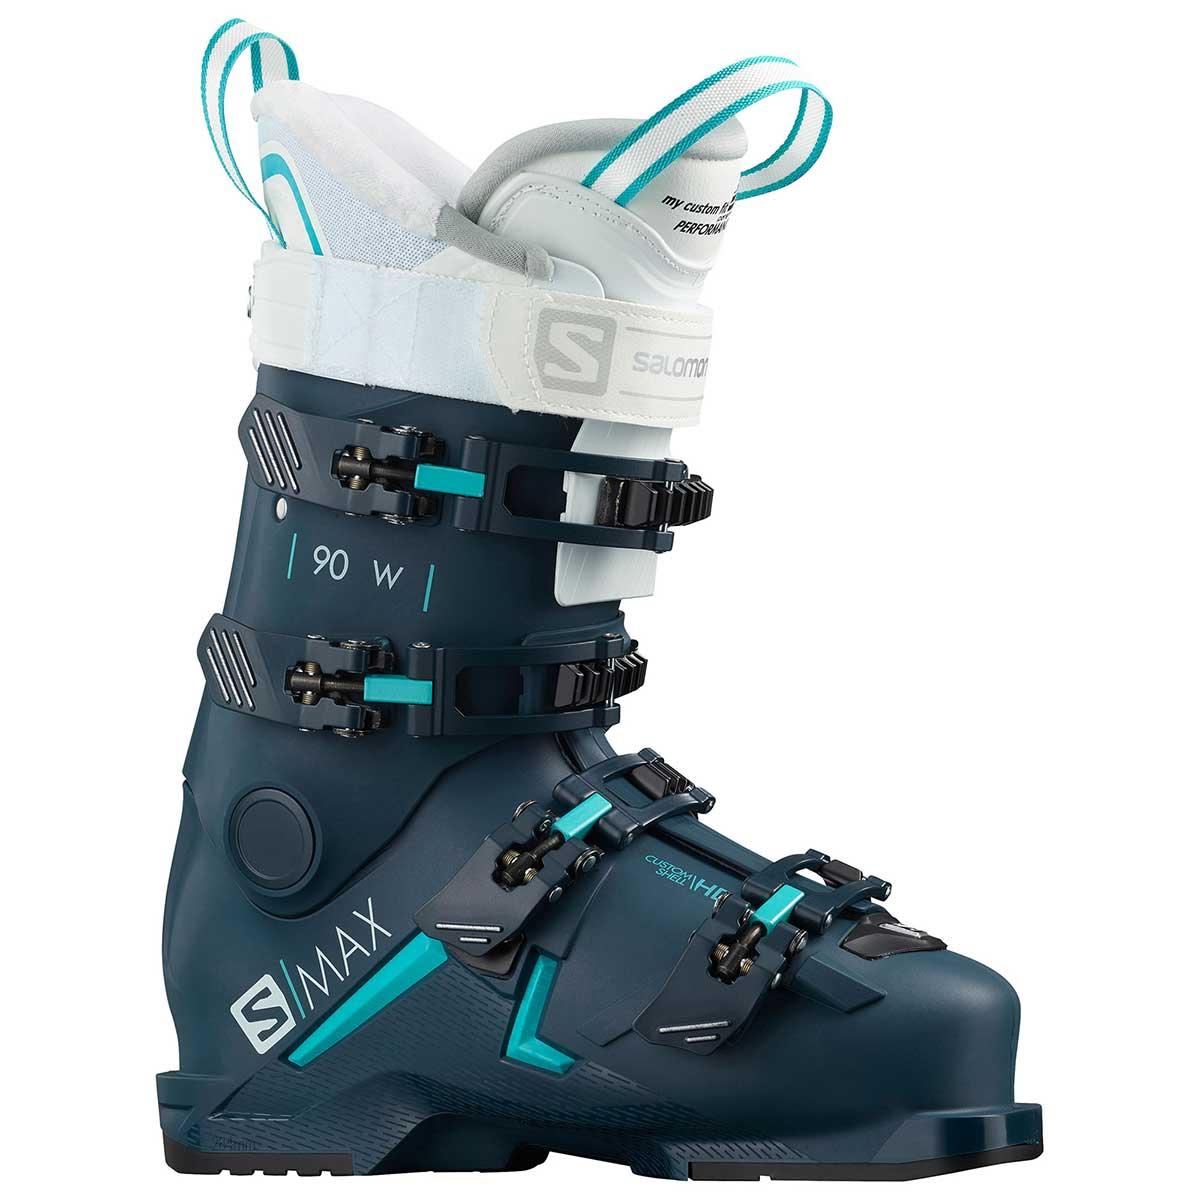 Salomon S/Max 90 ski boot in petrol blue